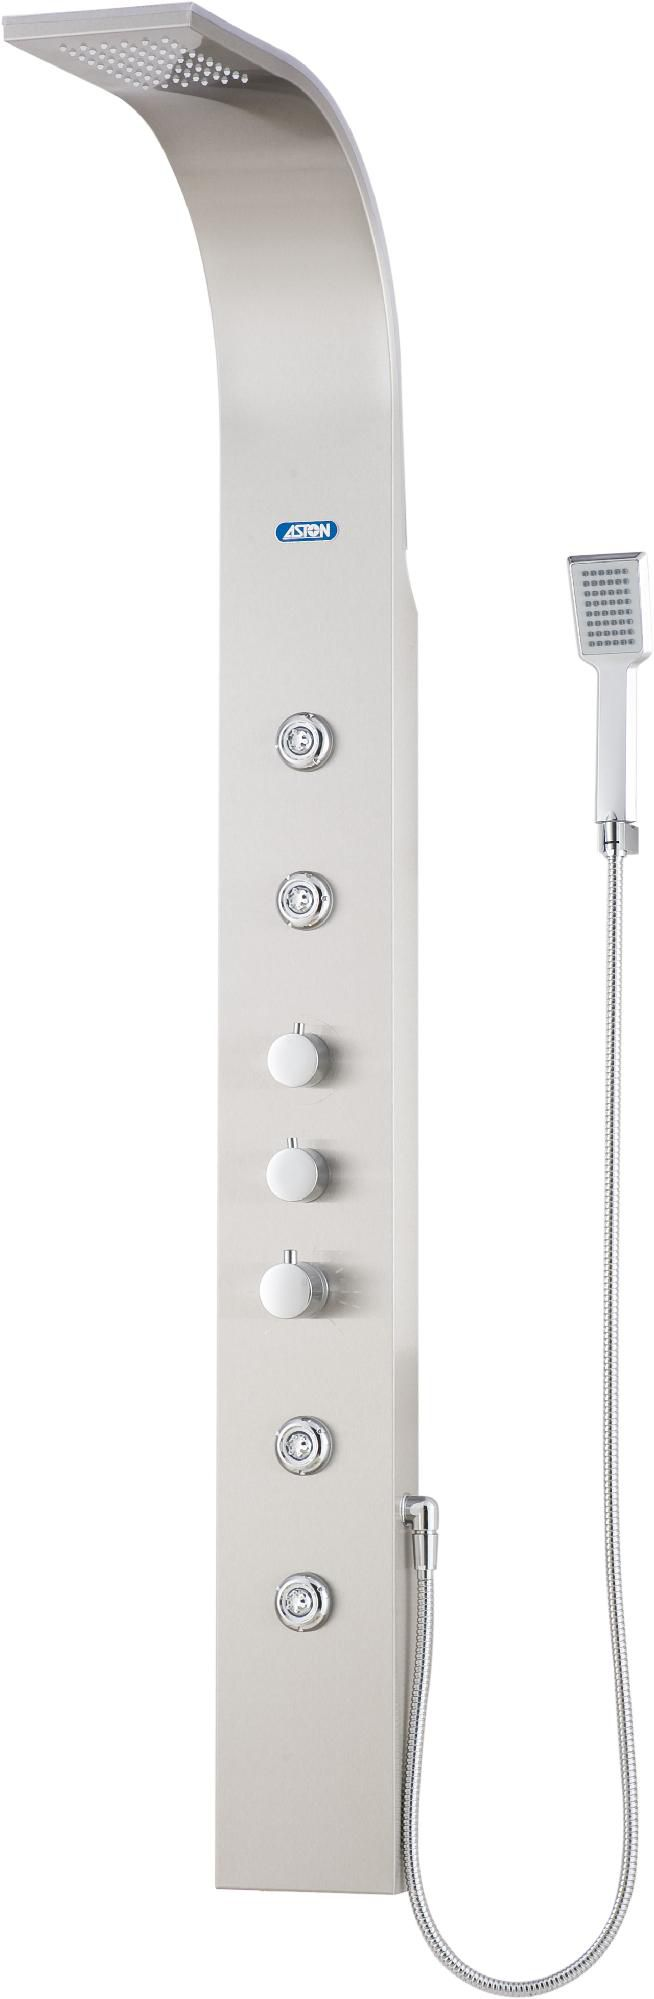 Aston  Stainless Steel 4-Jet Shower Panel